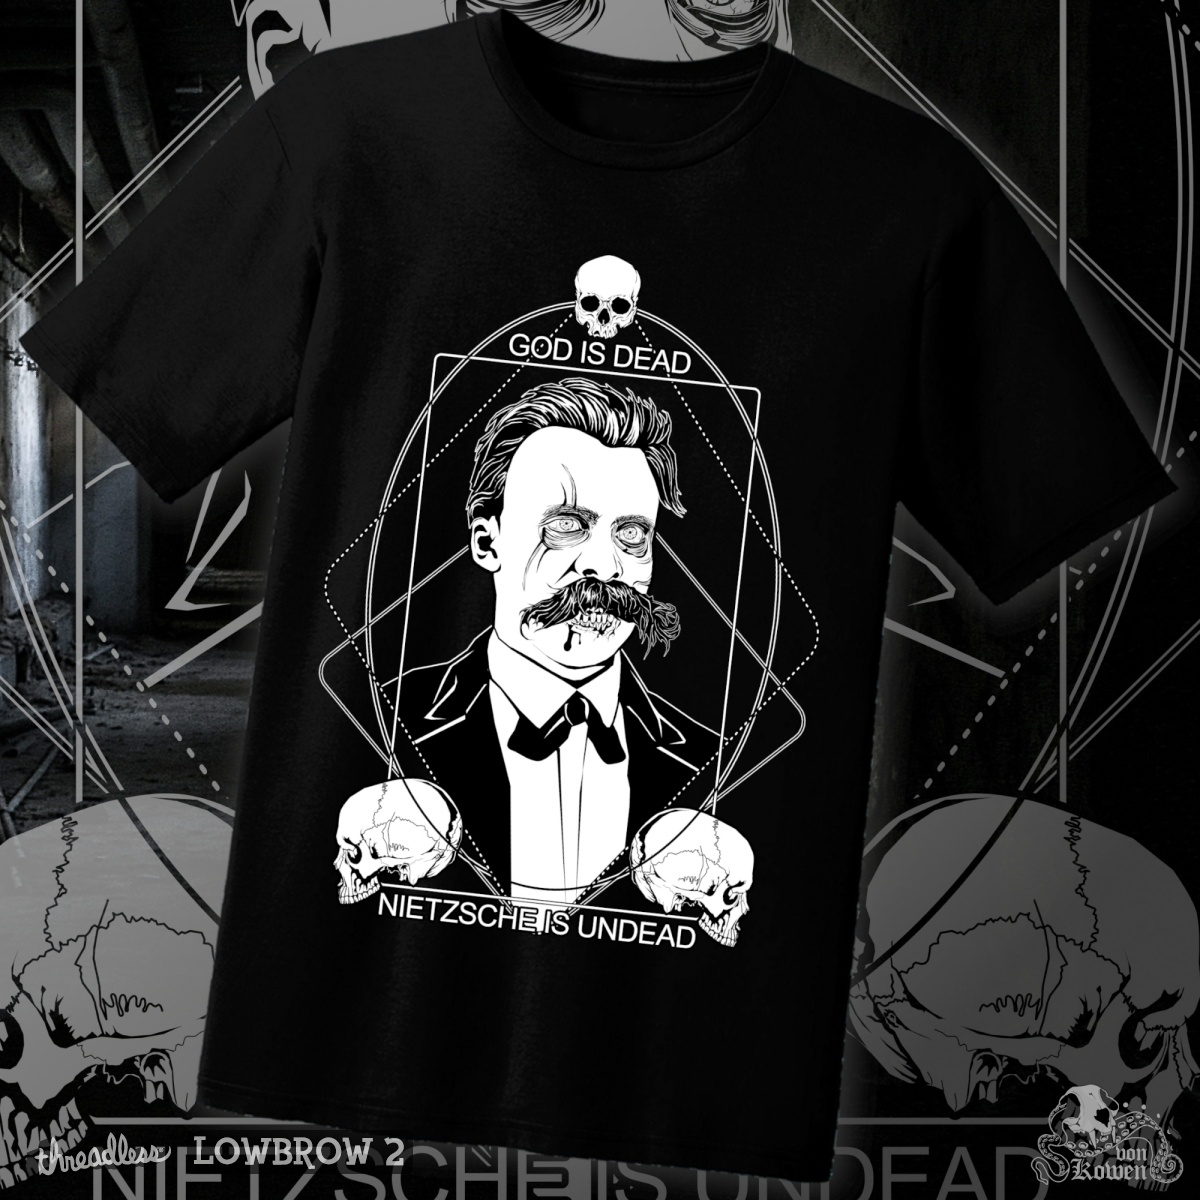 Nietzsche Zombie, a cool t-shirt design